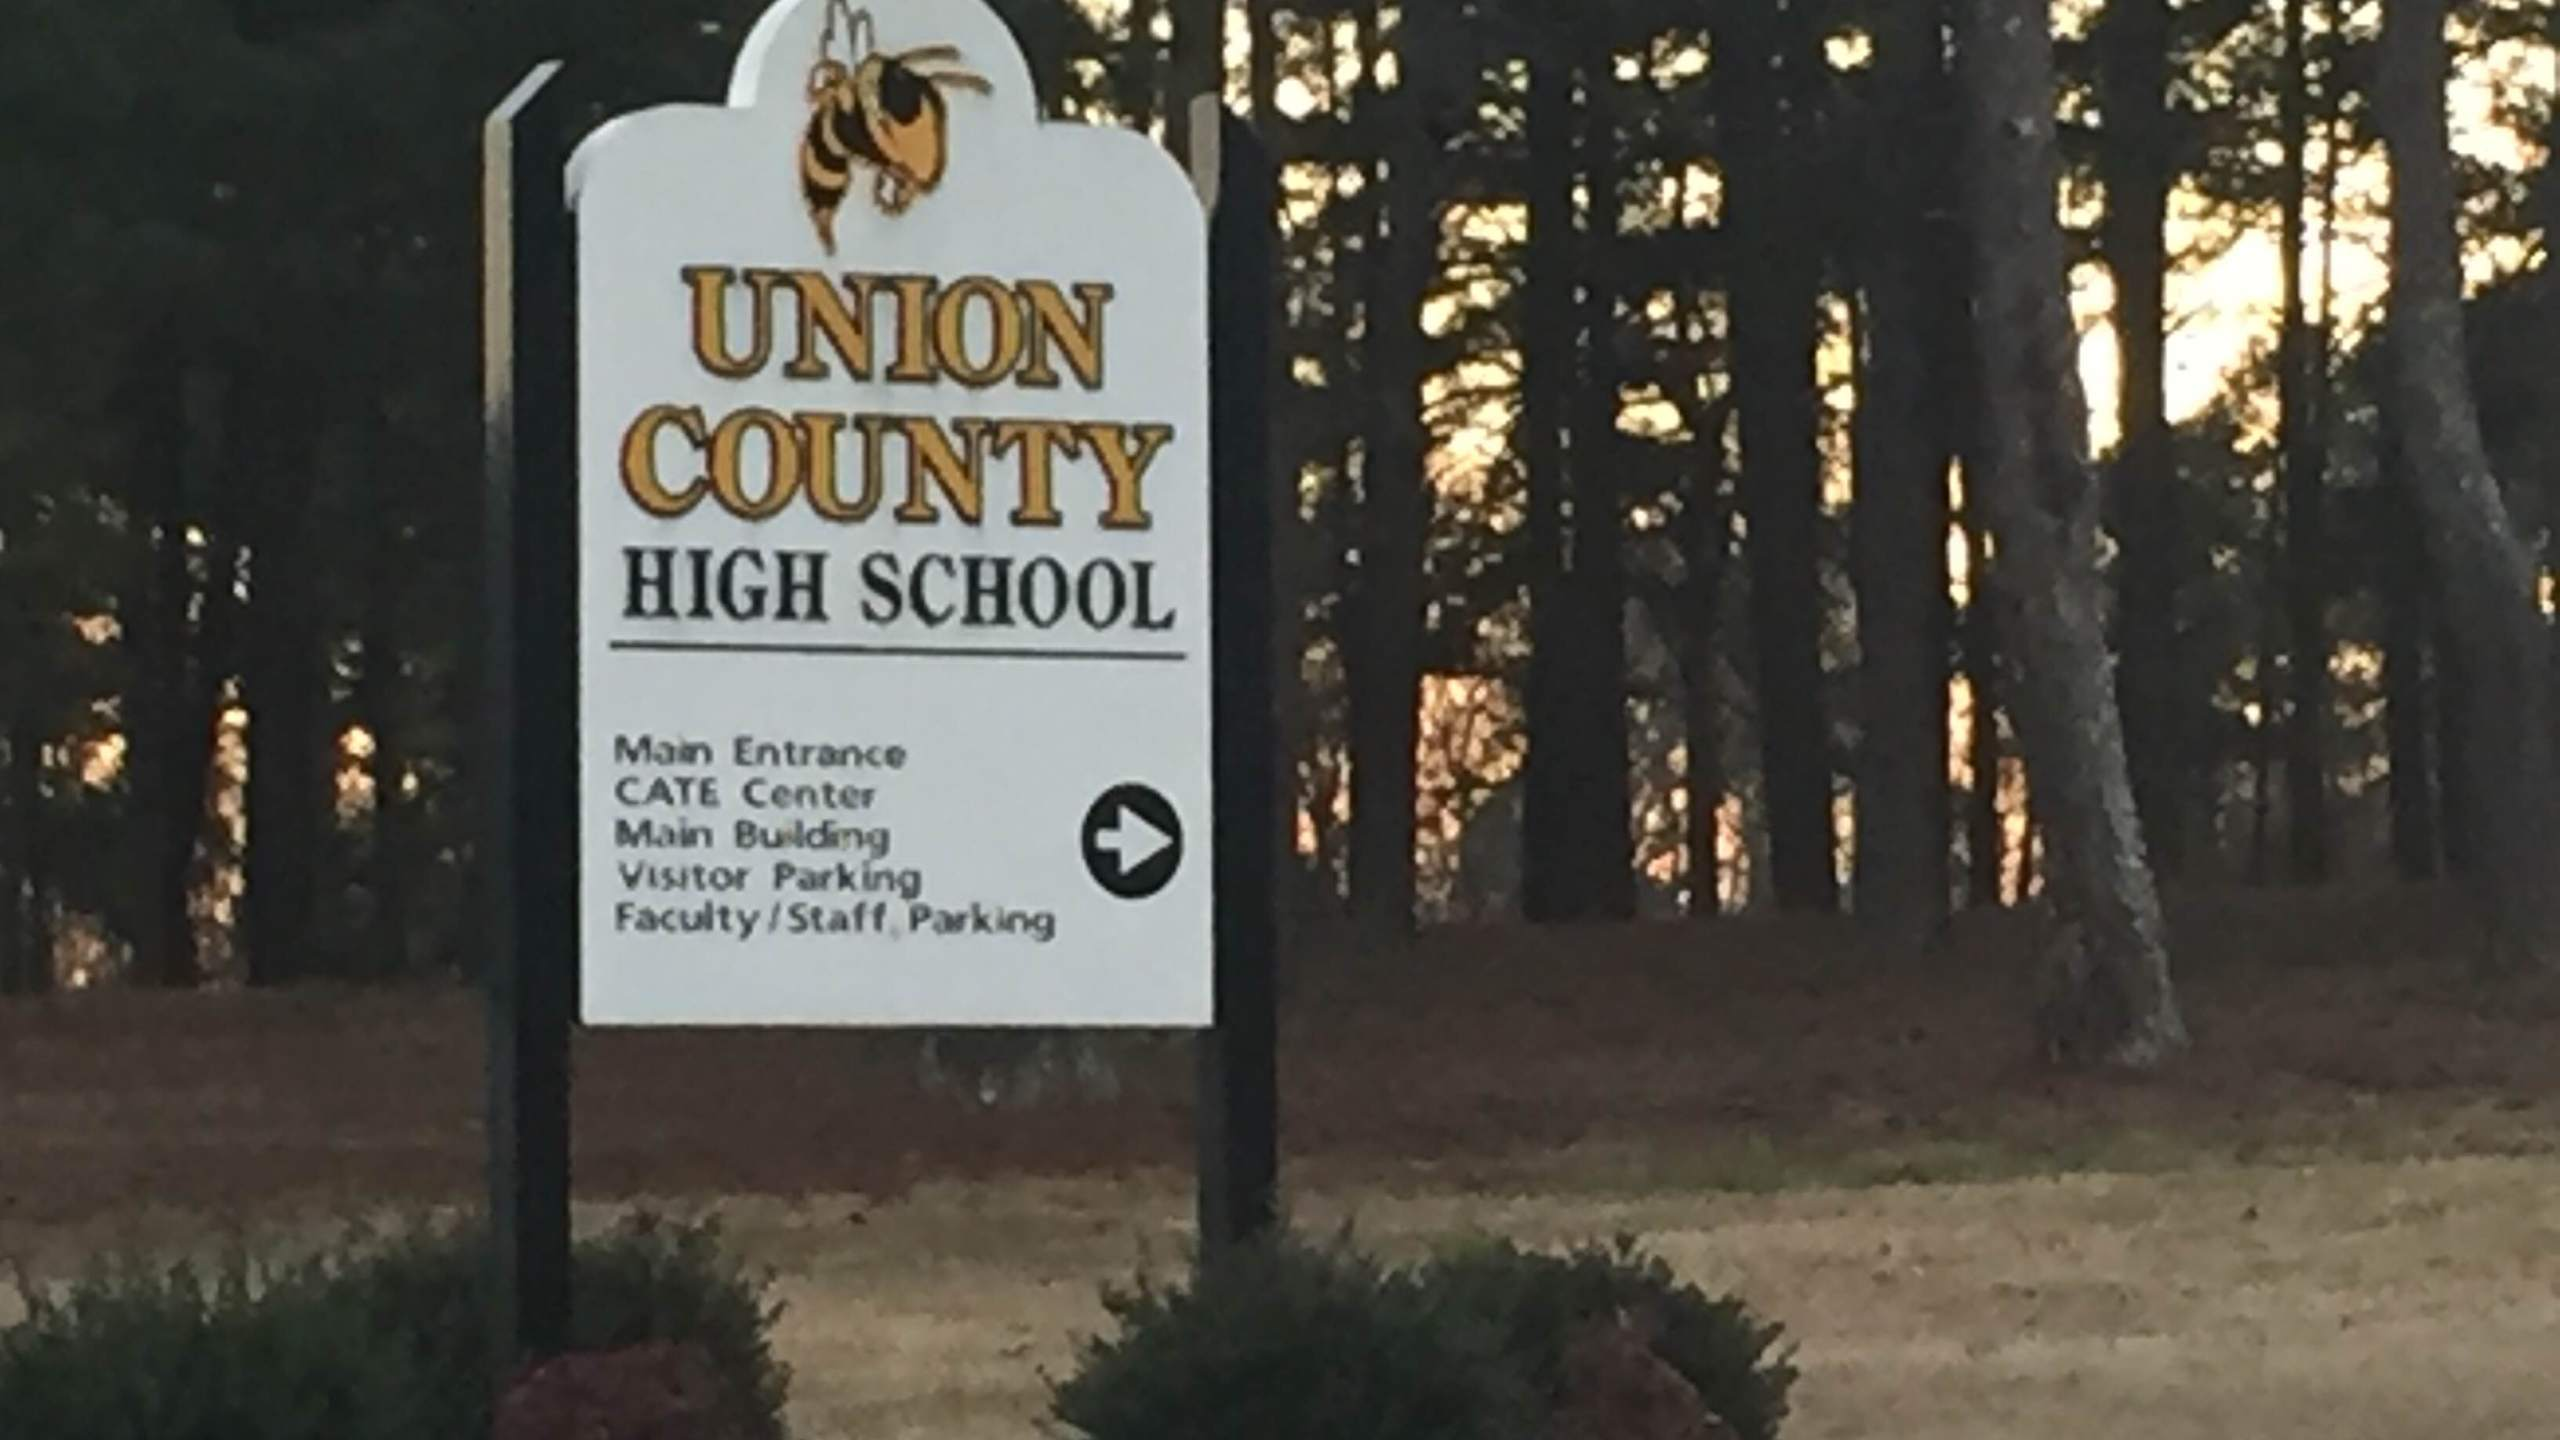 Union County High School_161392